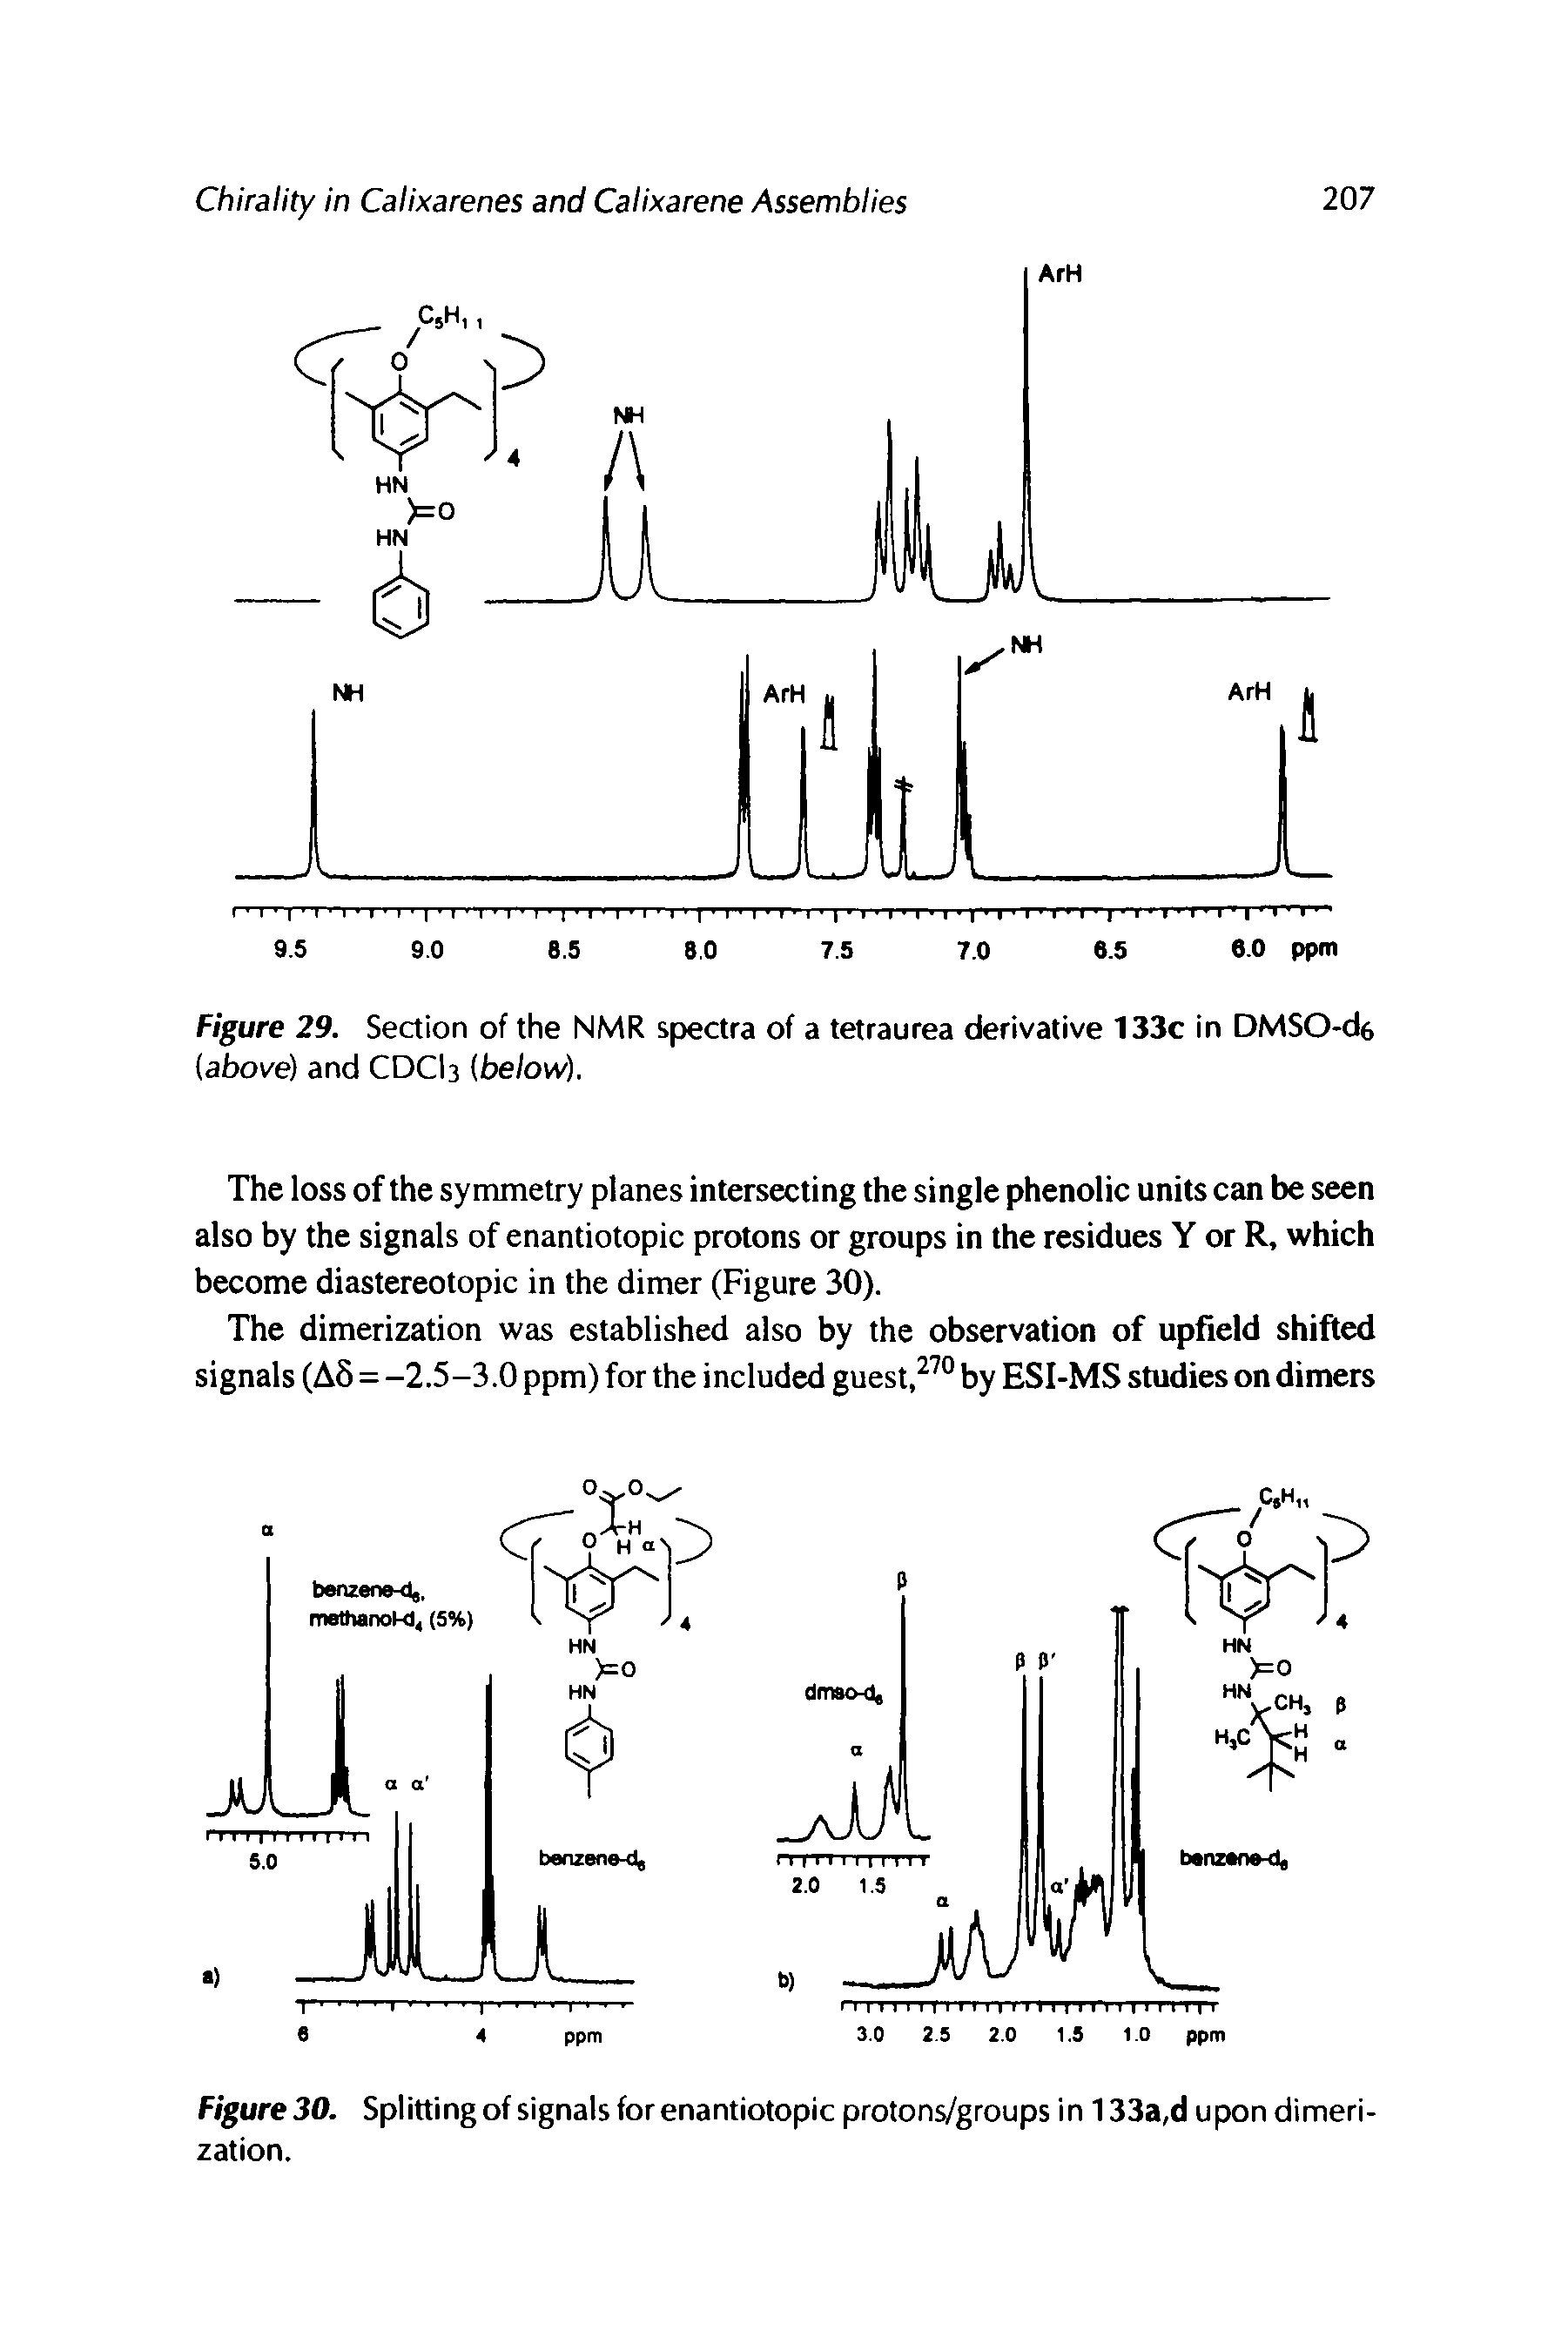 Figure 29. Section of the NMR spectra of a tetraurea derivative 133c in DMSO-d6